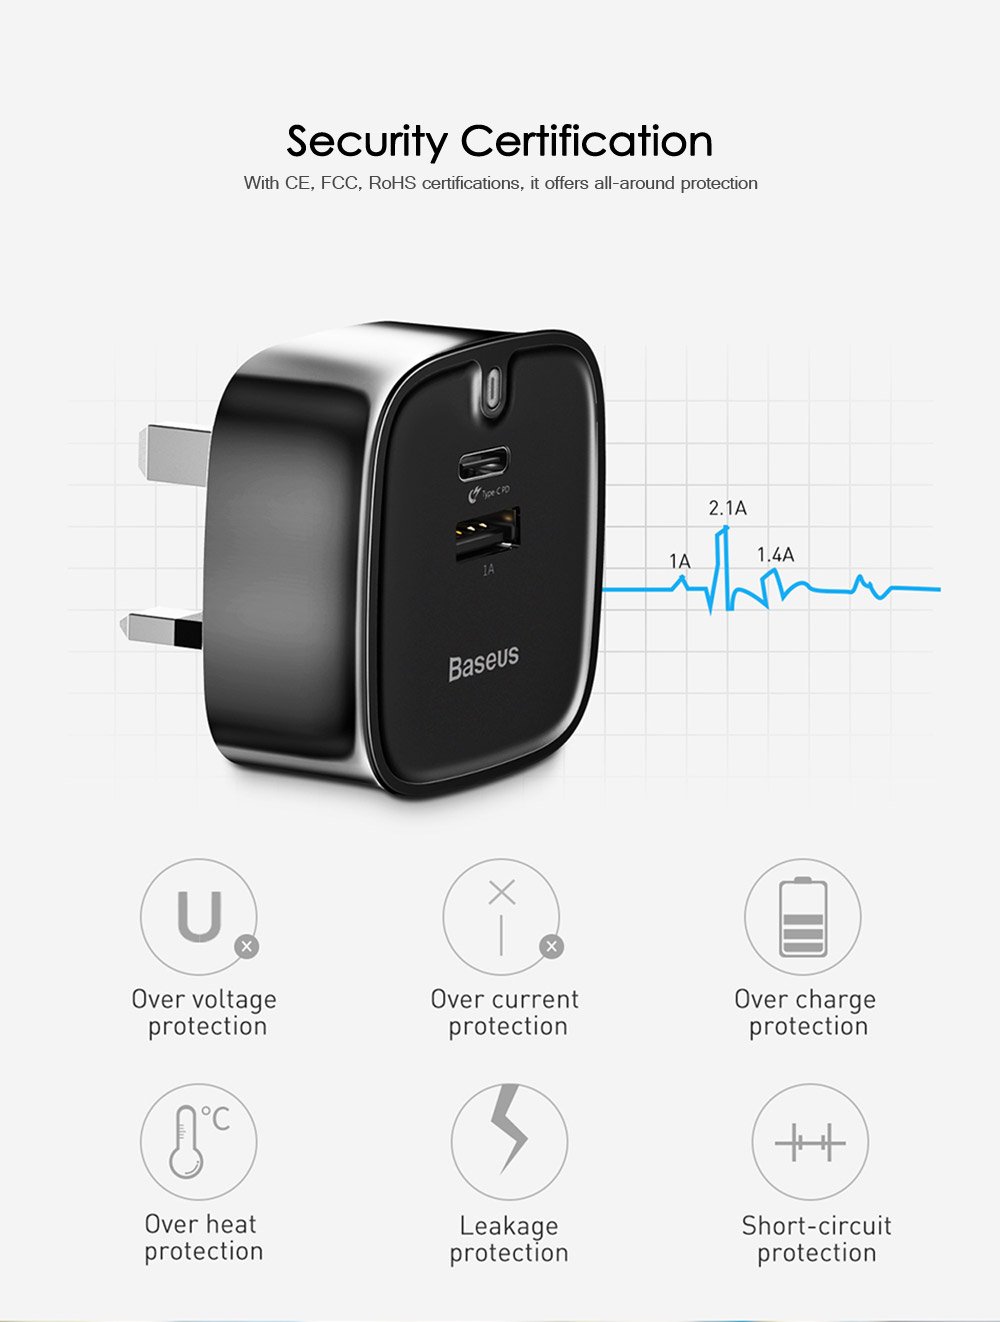 Baseus Funzi Type-C PD 3.0 + USB Fast Charger Portable Indicator Light PC ABS 5V / 1A 30W